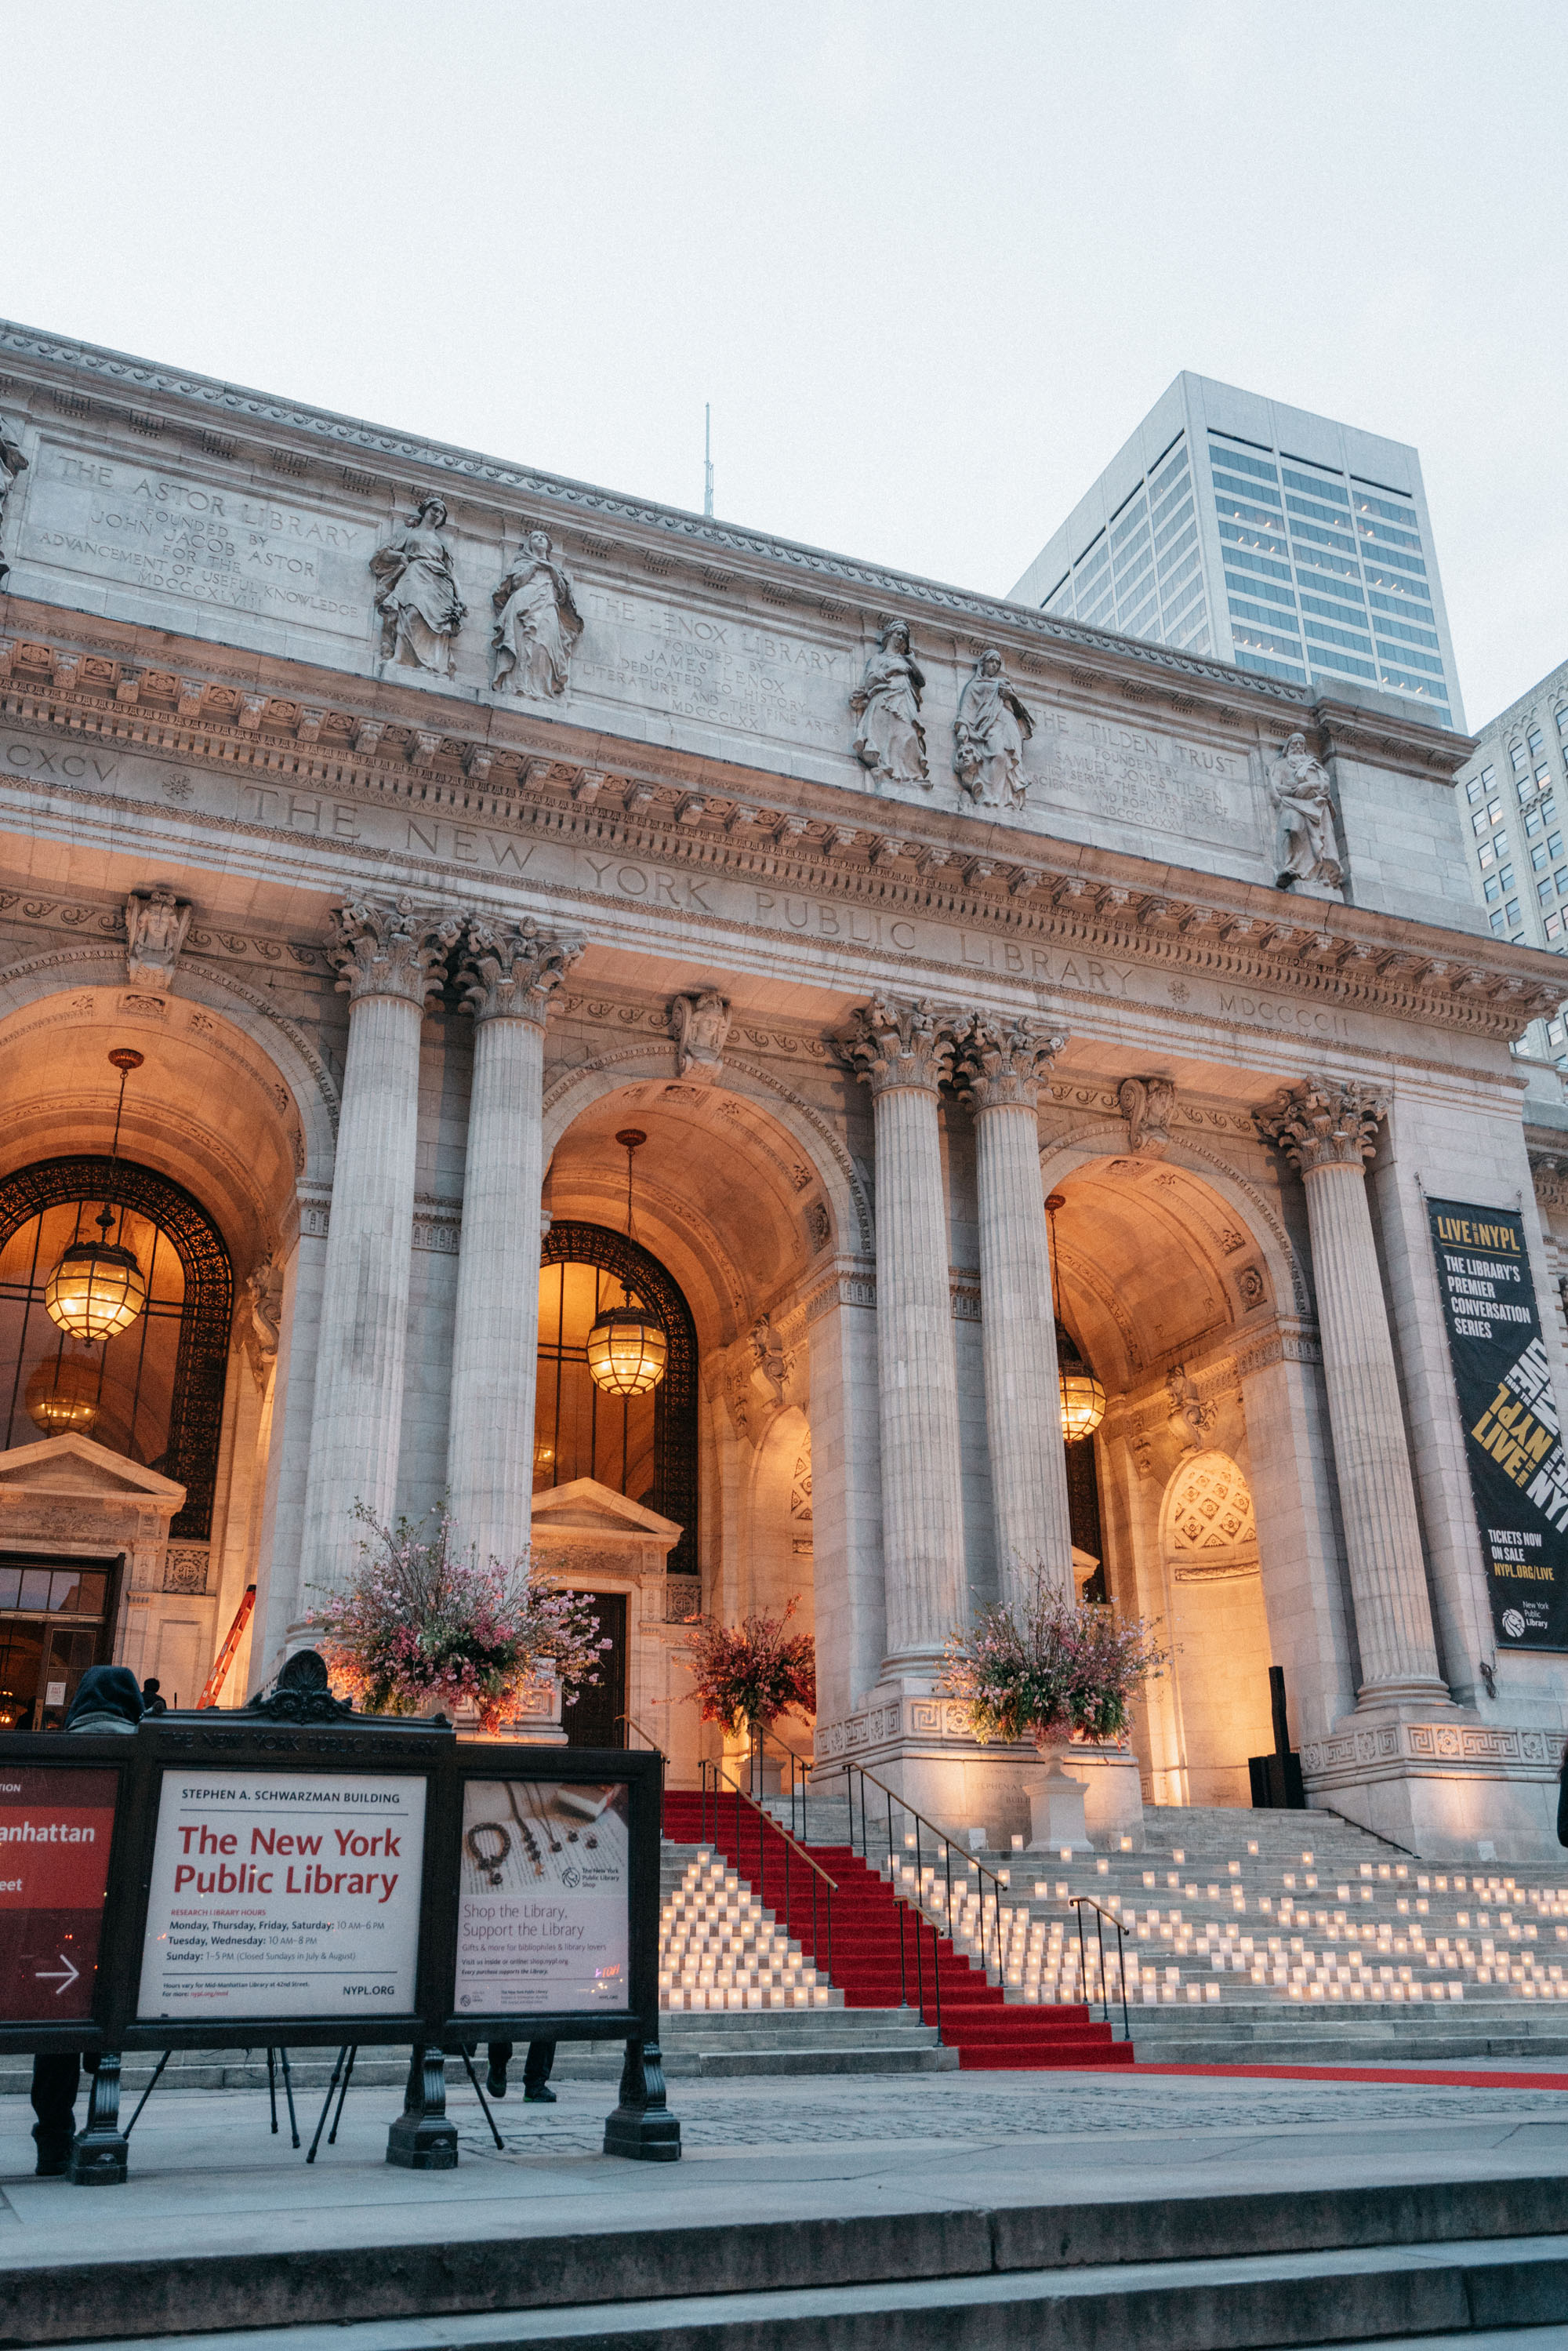 Passing by  The New York Public Library